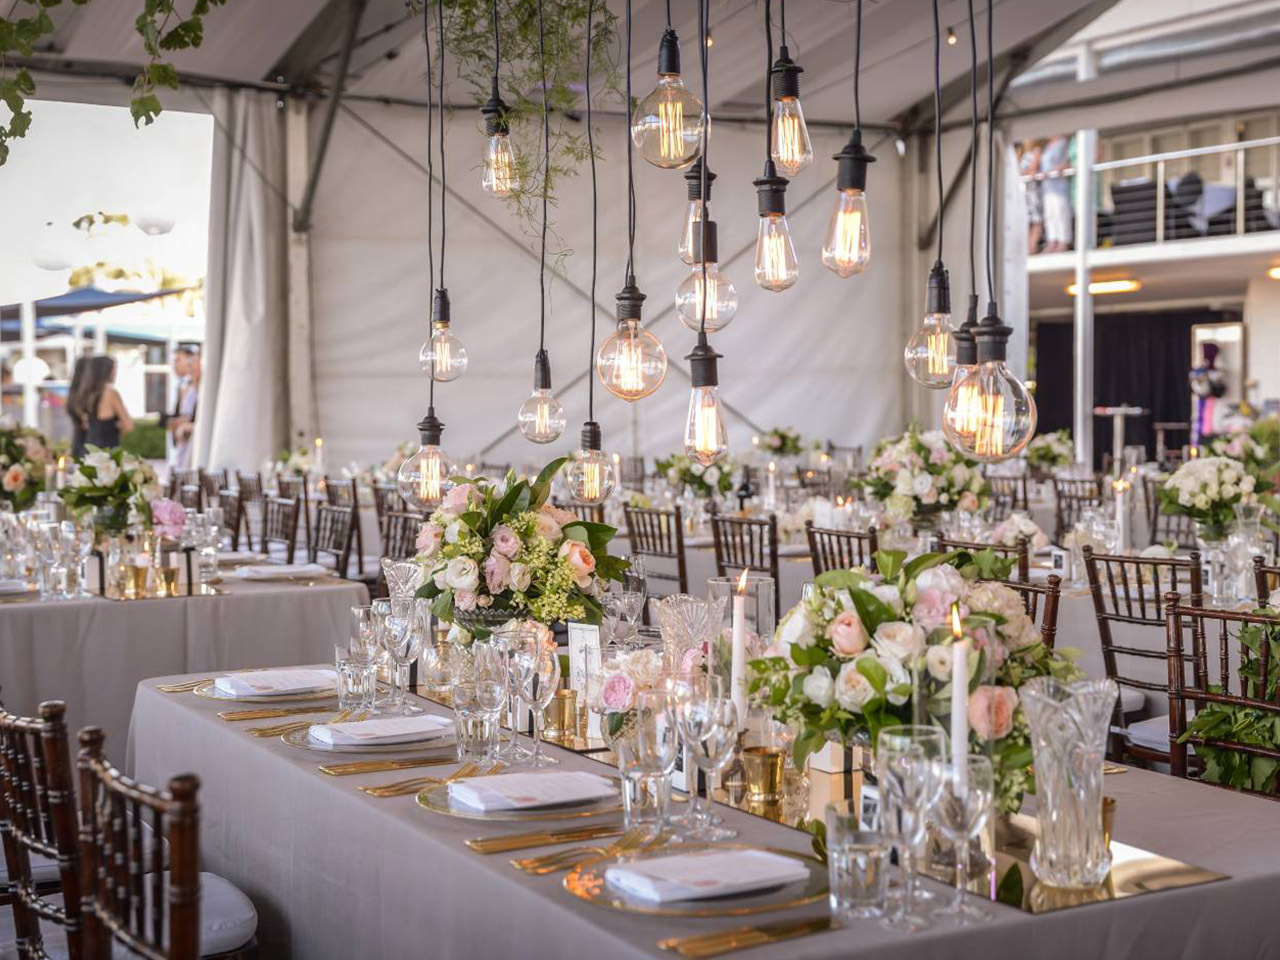 Chairs and Long Tables Wedding Setup With Hanging Lights And Flower Centerpieces